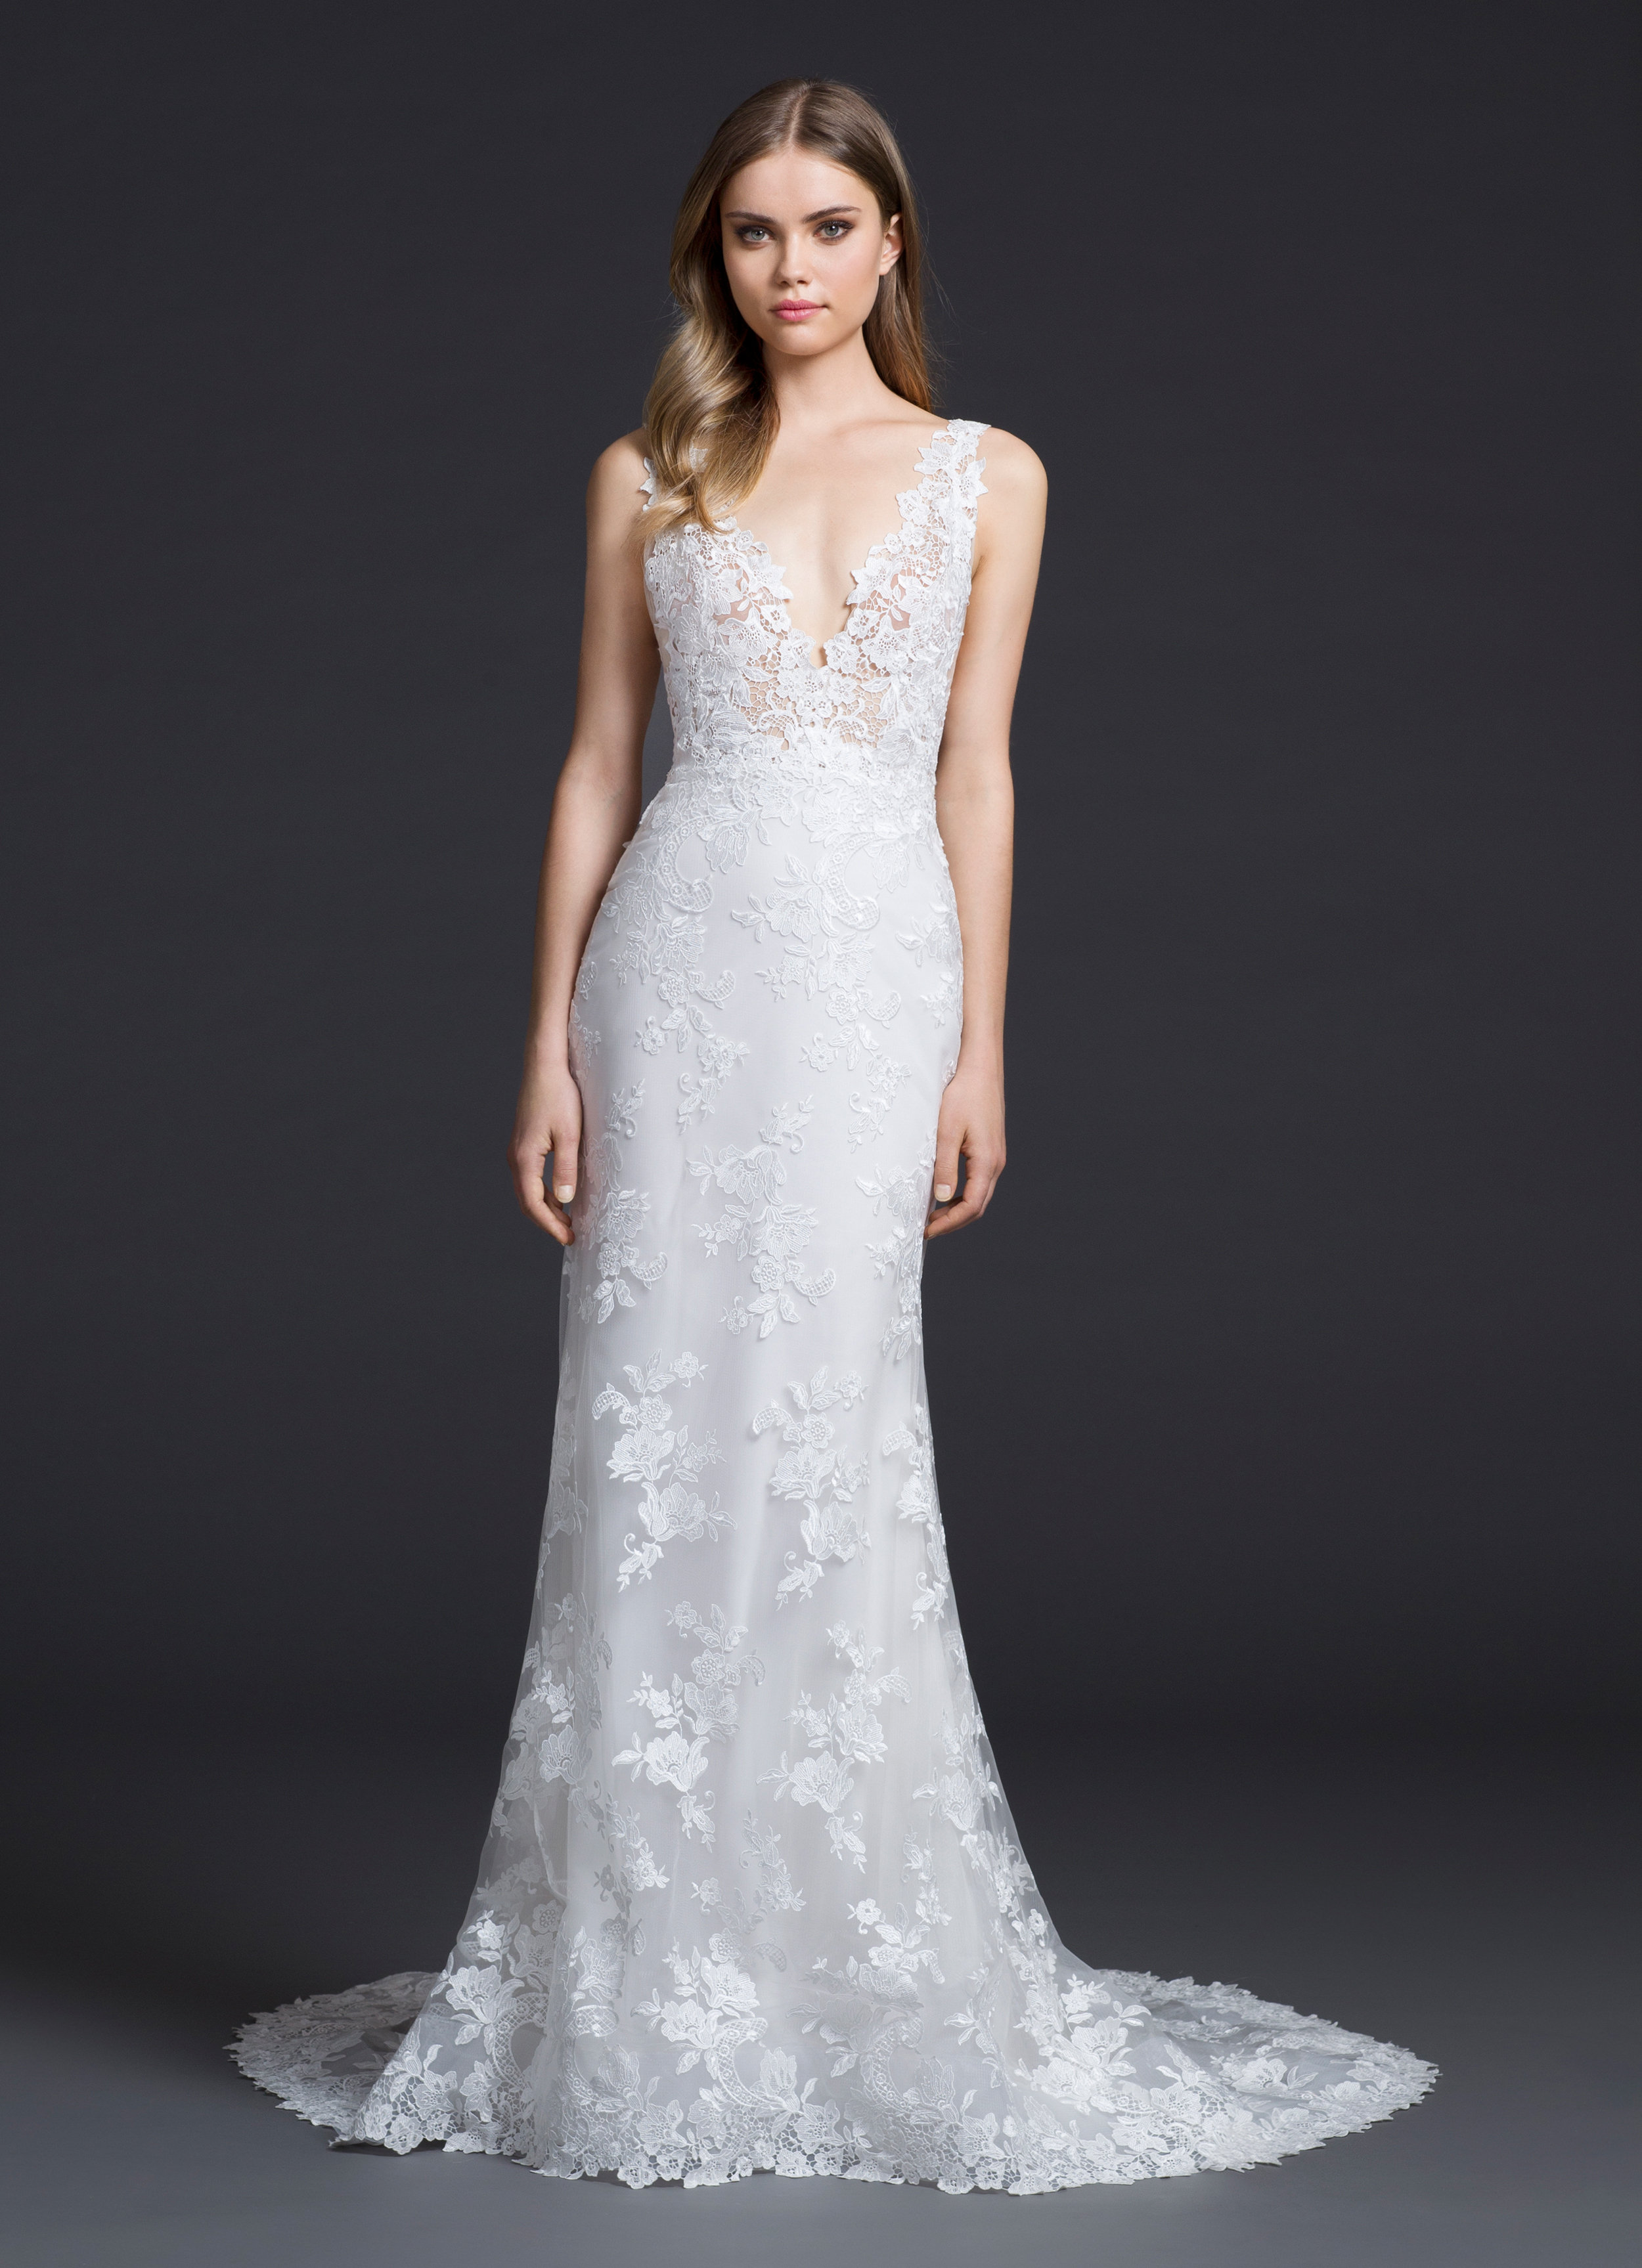 Bridal Gowns and Wedding Dresses by JLM Couture Style 3656